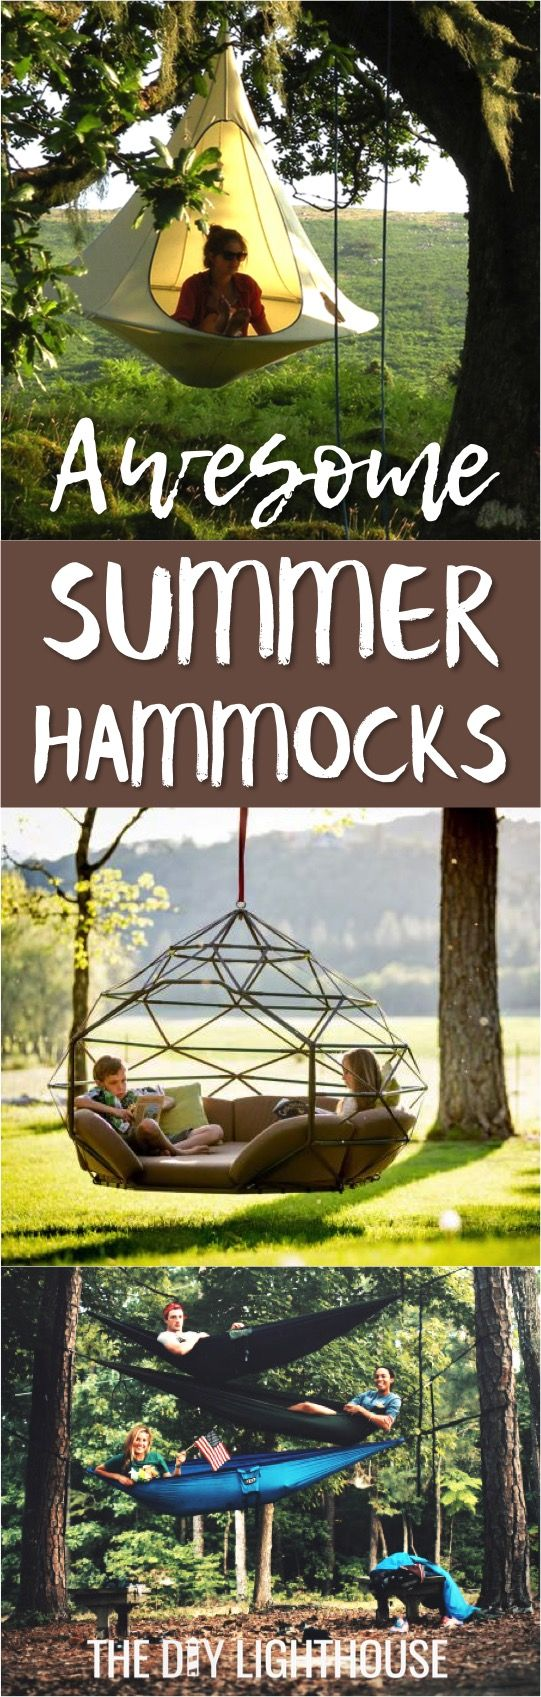 Awesome summer hammocks | DIY hammock tutorial and hammocks you can buy | Great for your yard, backyard, indoor, camping, etc. Multi person hammocks, double hammock, single hammock, etc. Really cool and unique hammocks that look awesome and are functional | Outdoor furniture for your backyard, patio, or yard.